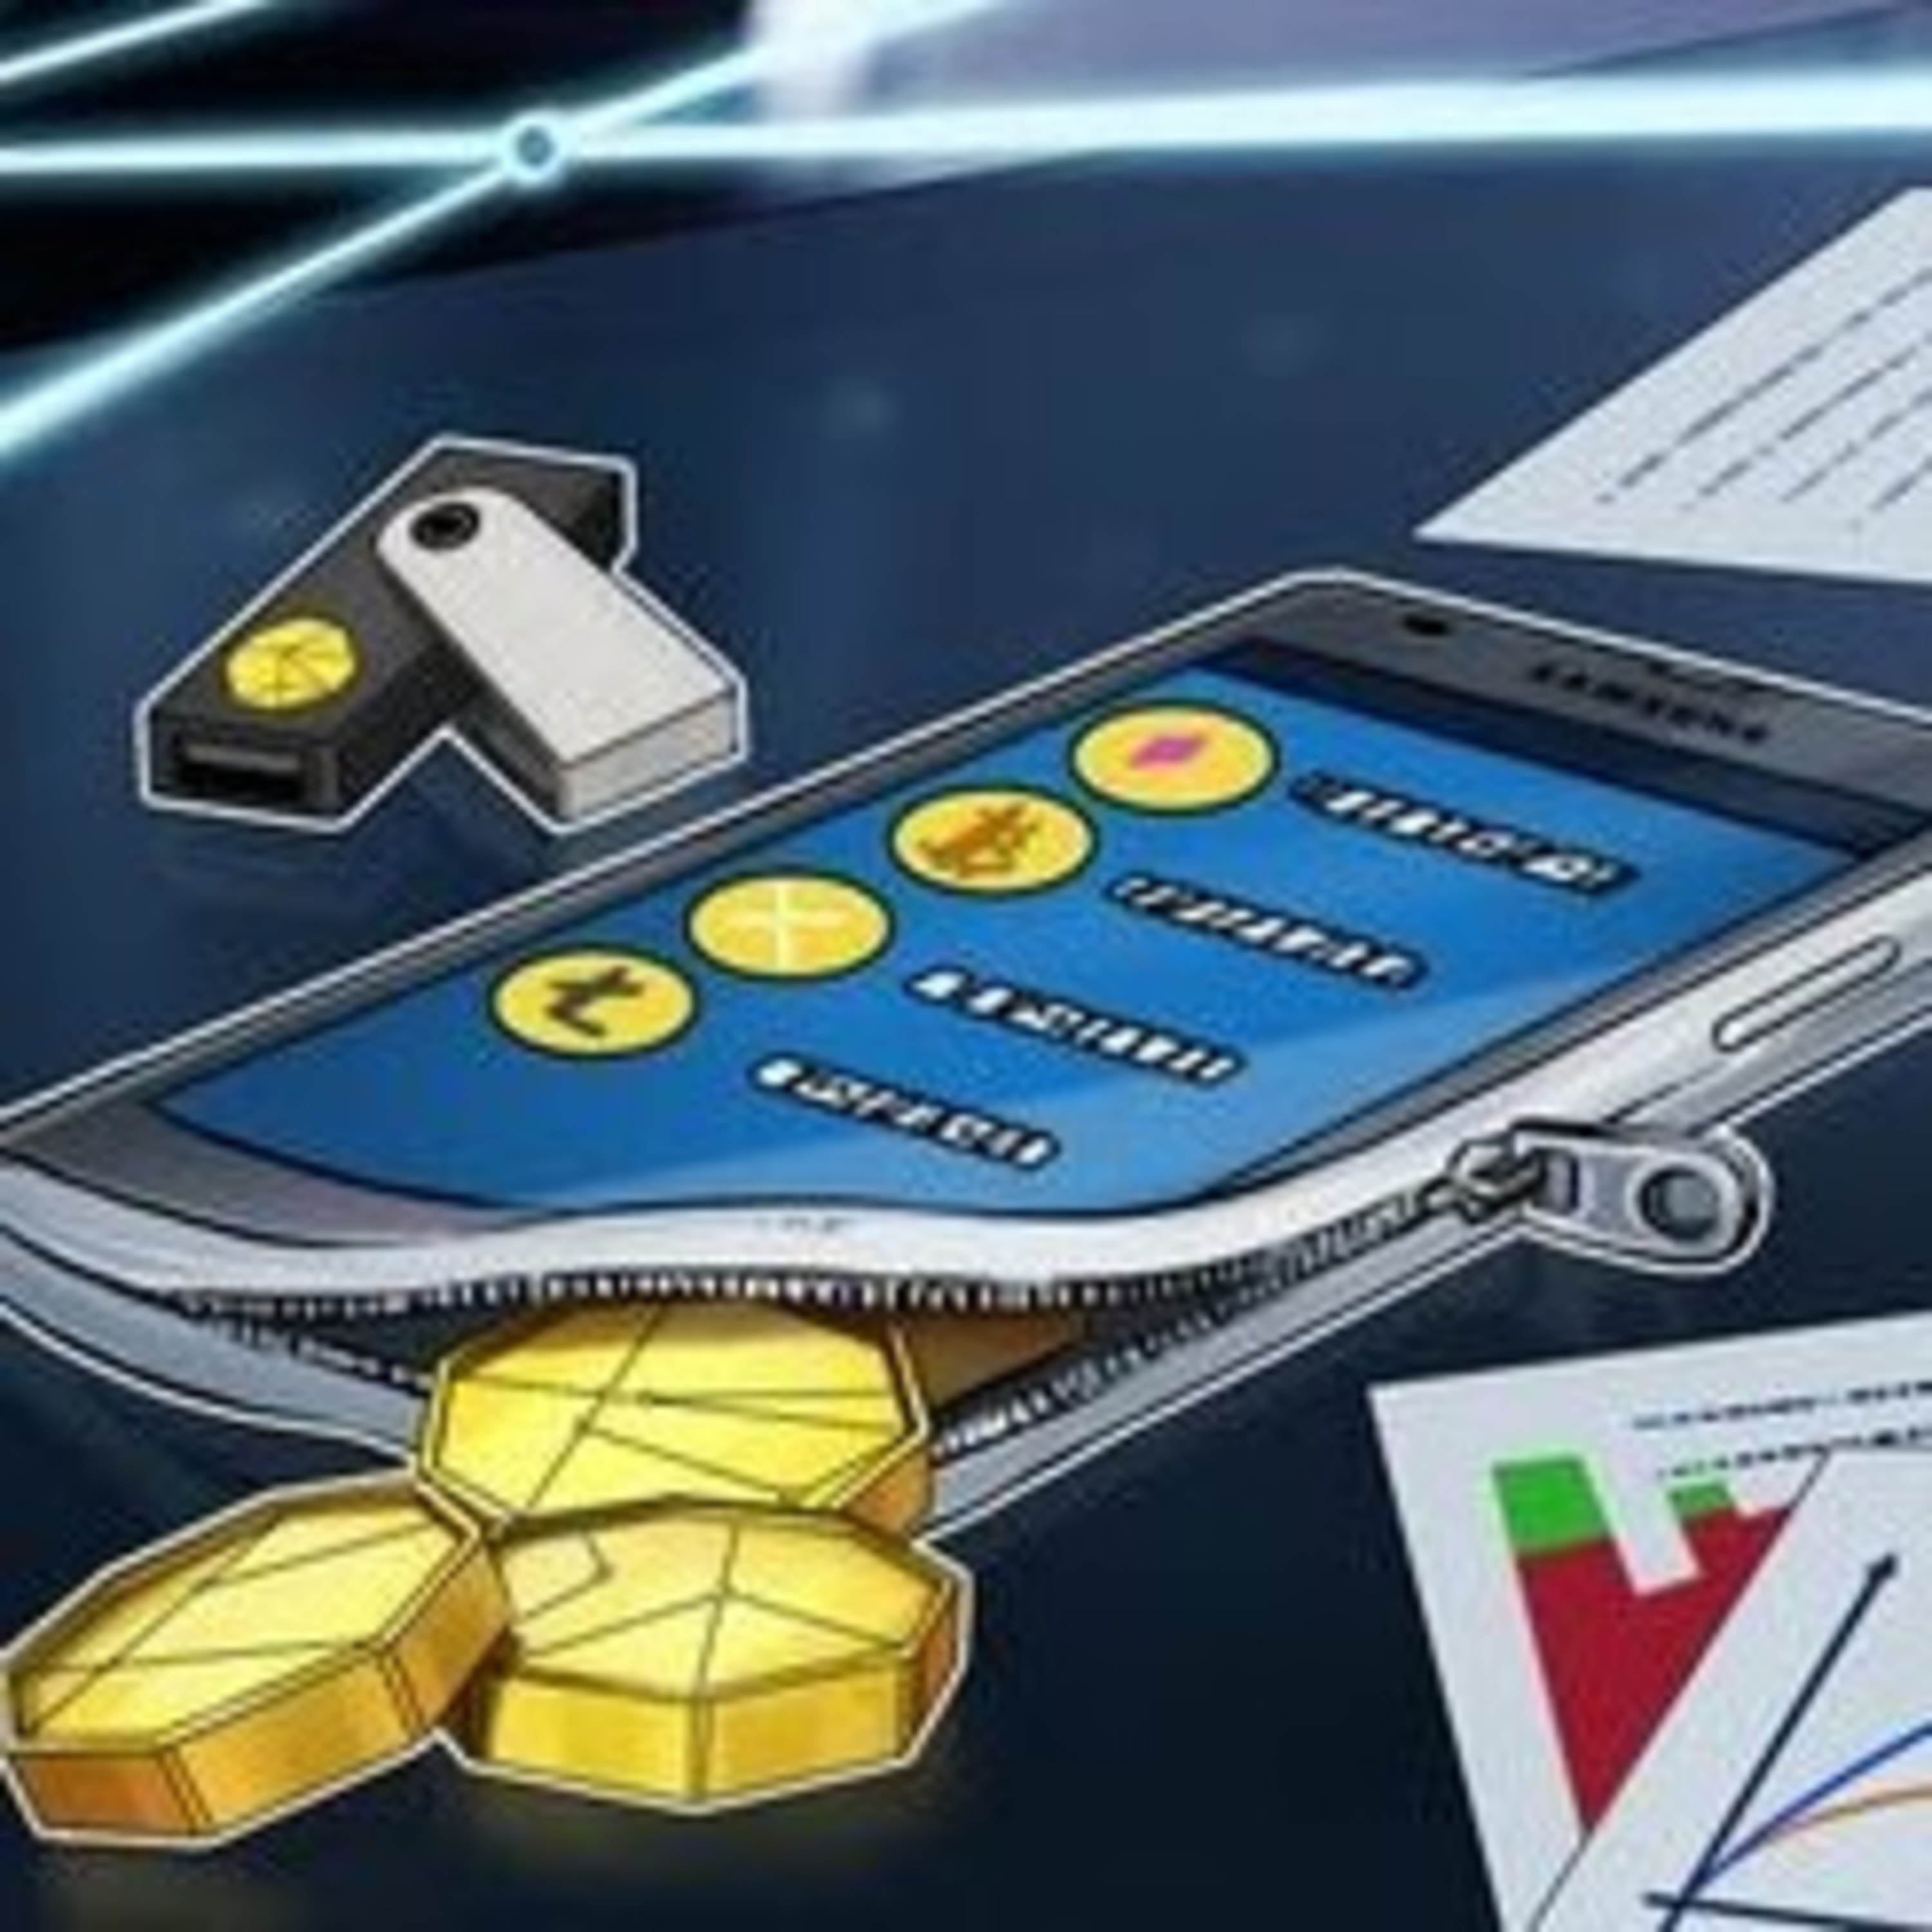 Digital wallets and private keys. What are they? Where do I obtain one?